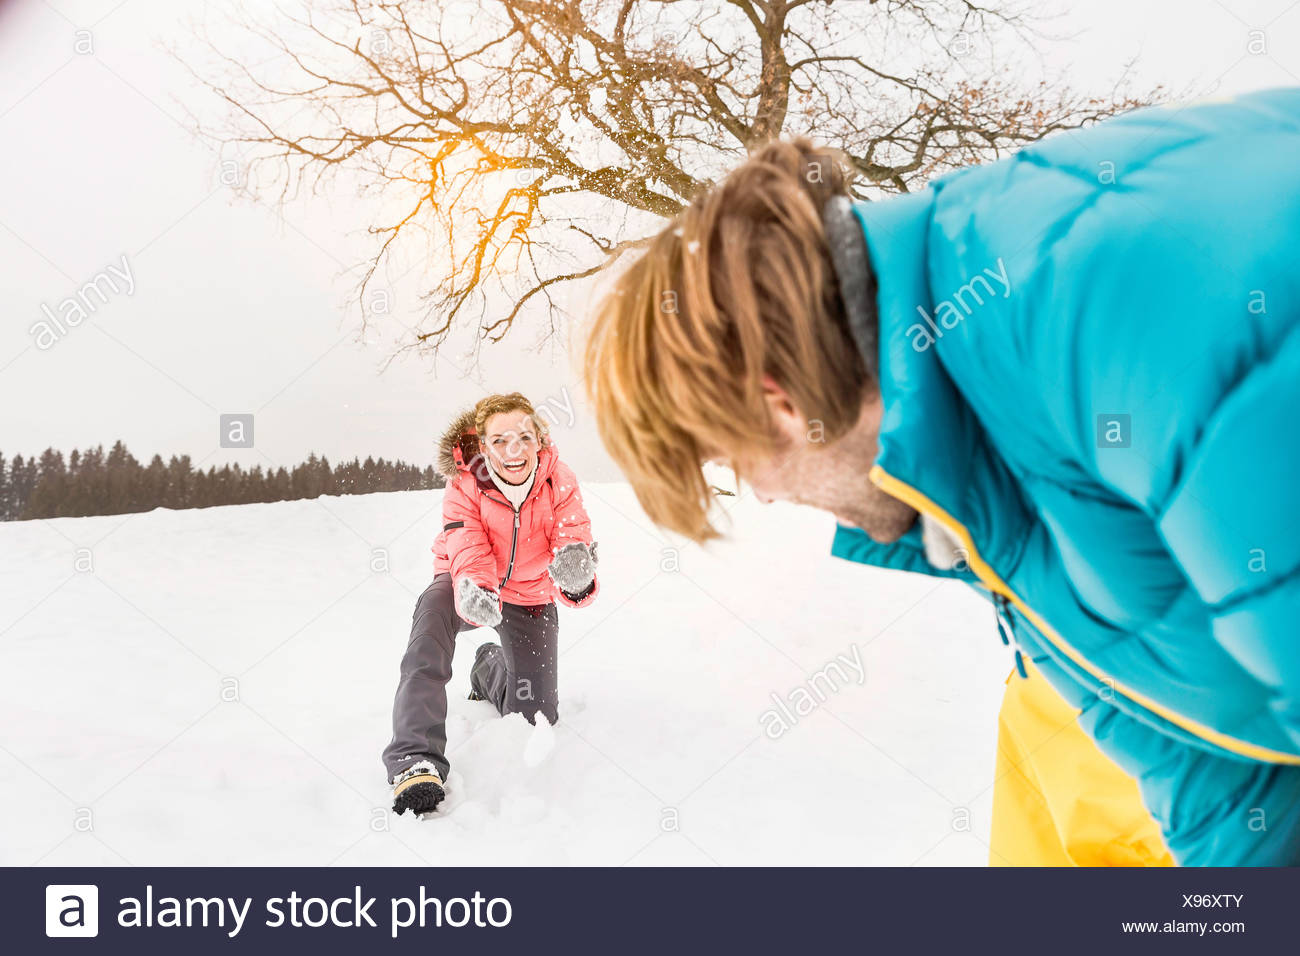 Couple play fighting in snow - Stock Image